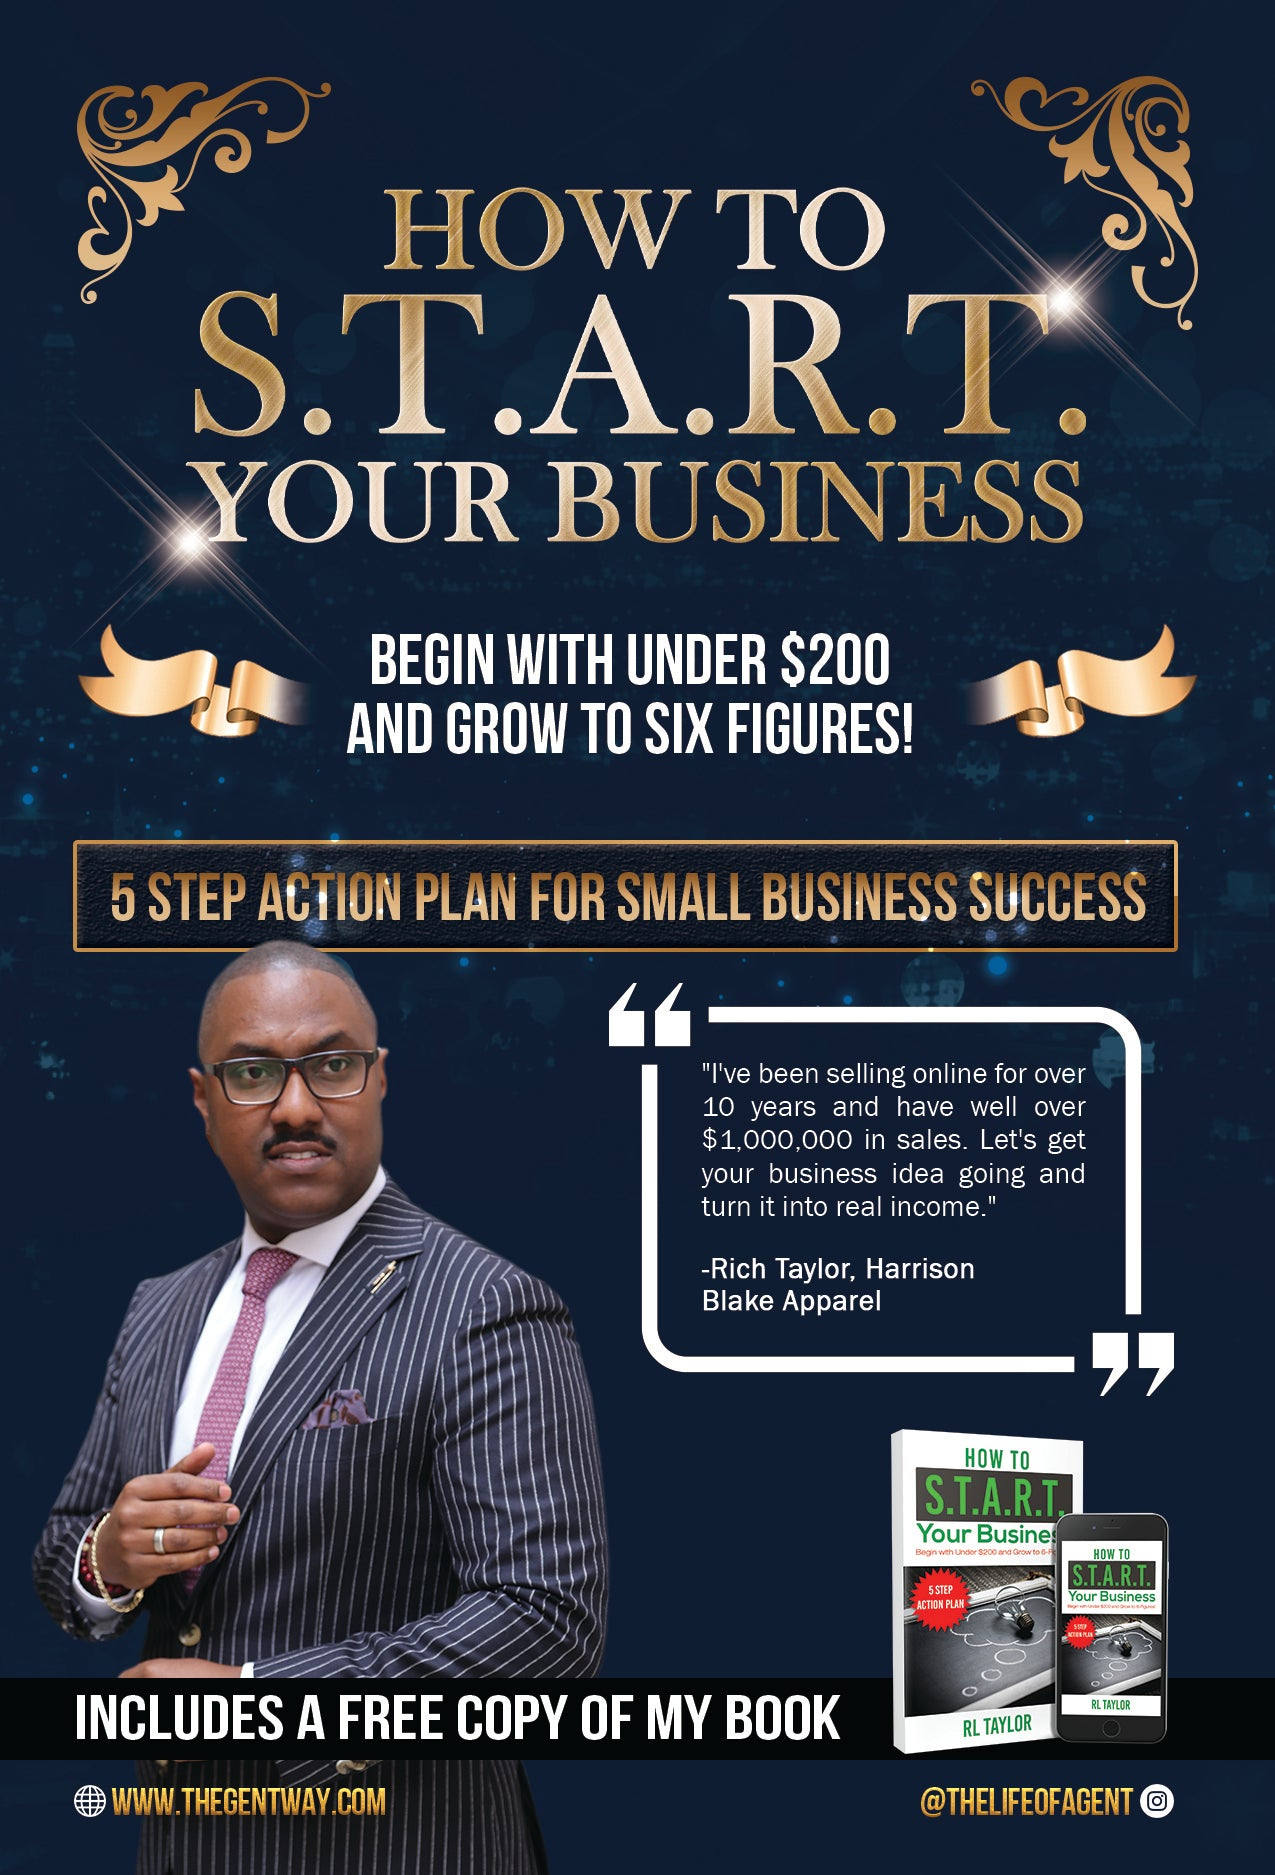 S.T.A.R.T. Your Business Online Course and 4 Coaching Sessions